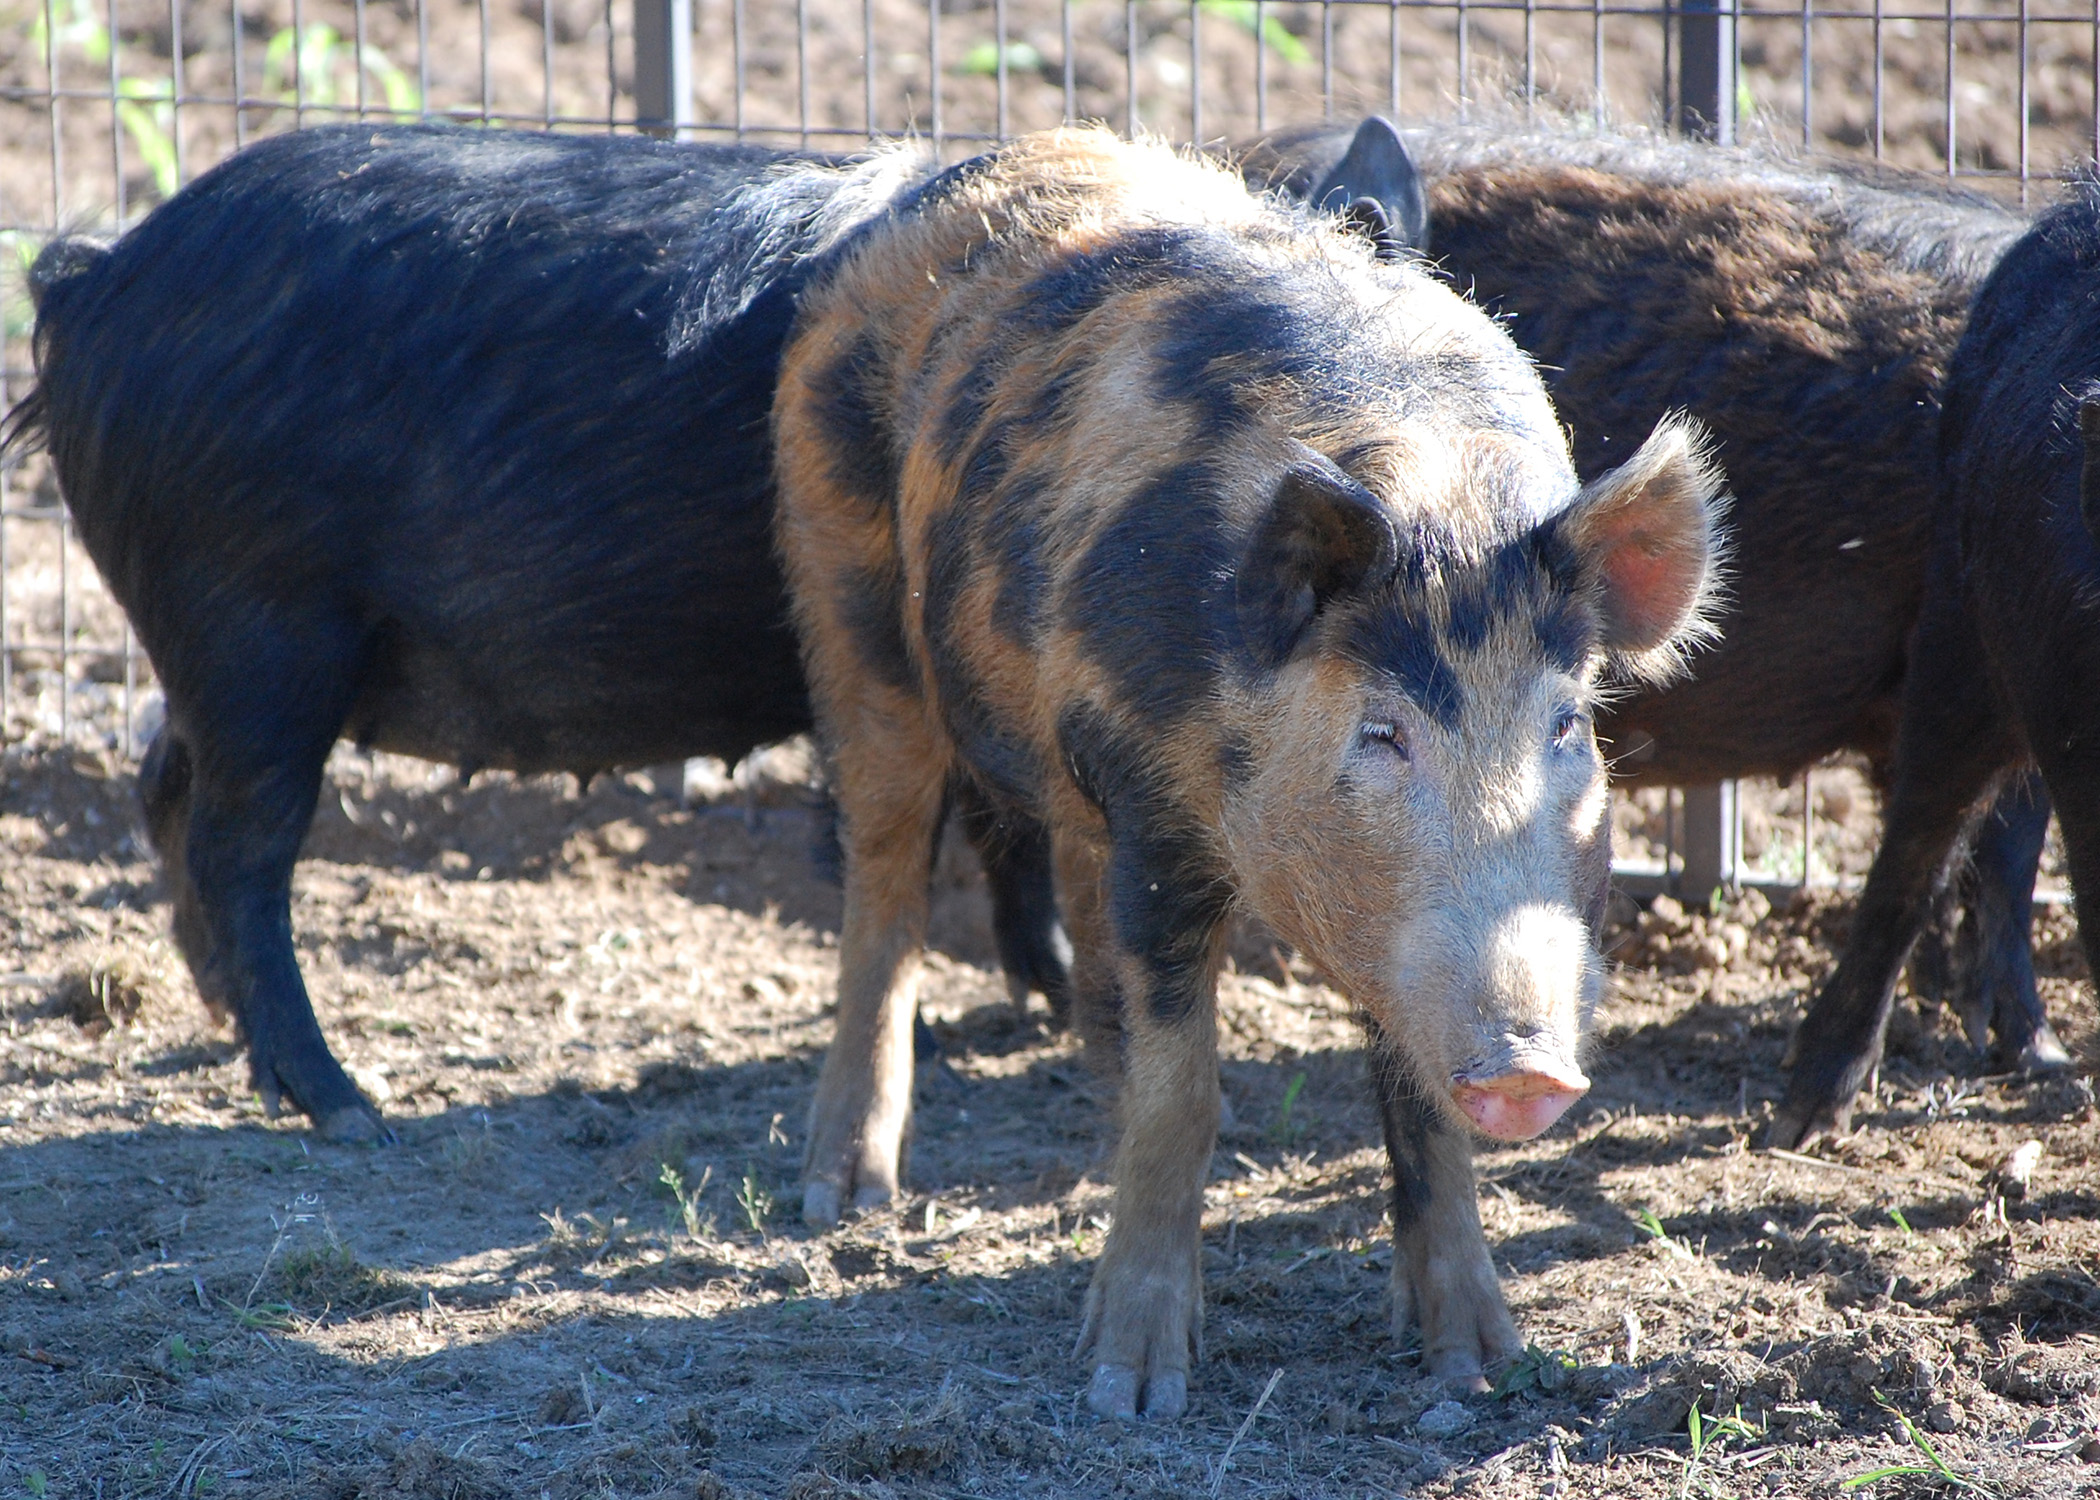 Transporting wild hogs threatens land, crops | Mississippi